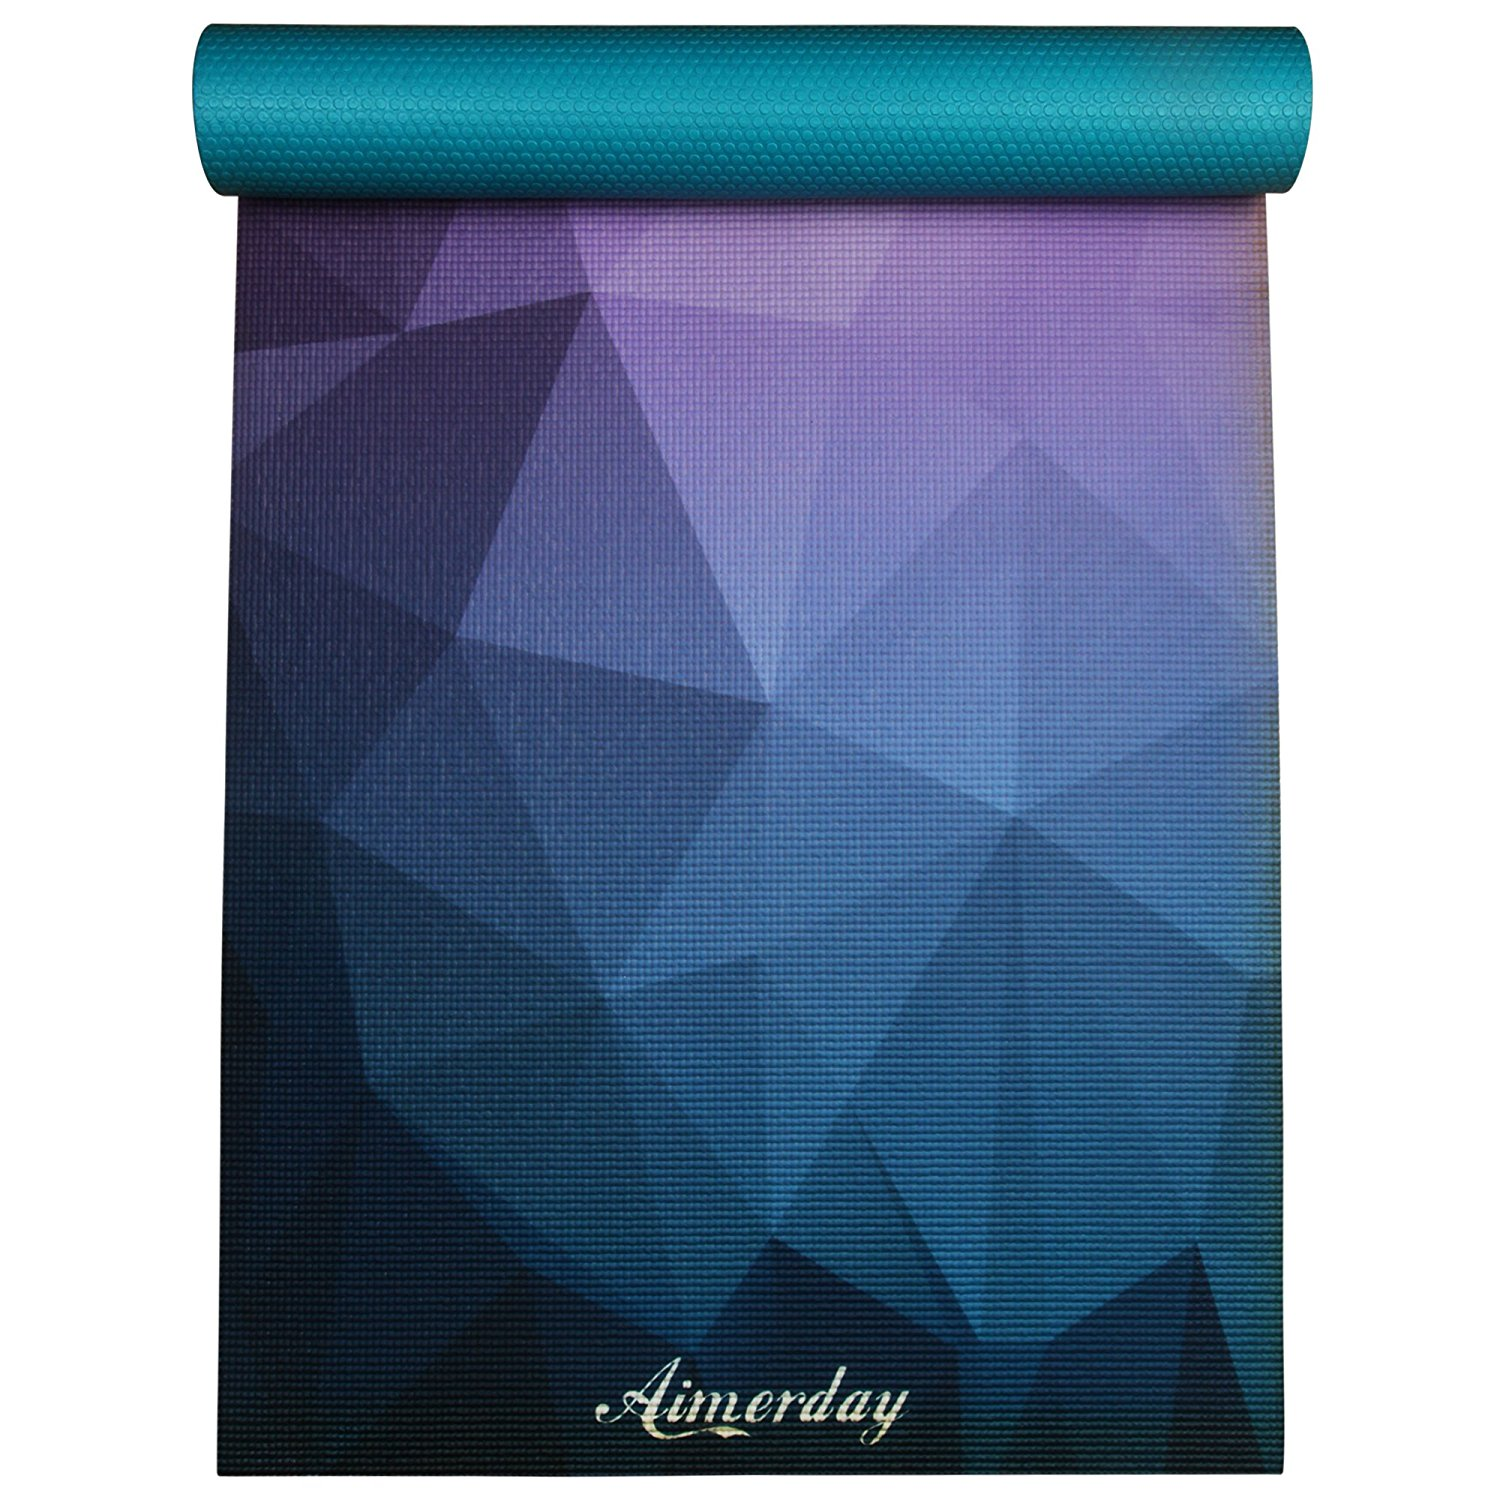 yoga gaiam unique reviews mats colors designs review yogauthority printed print and mat